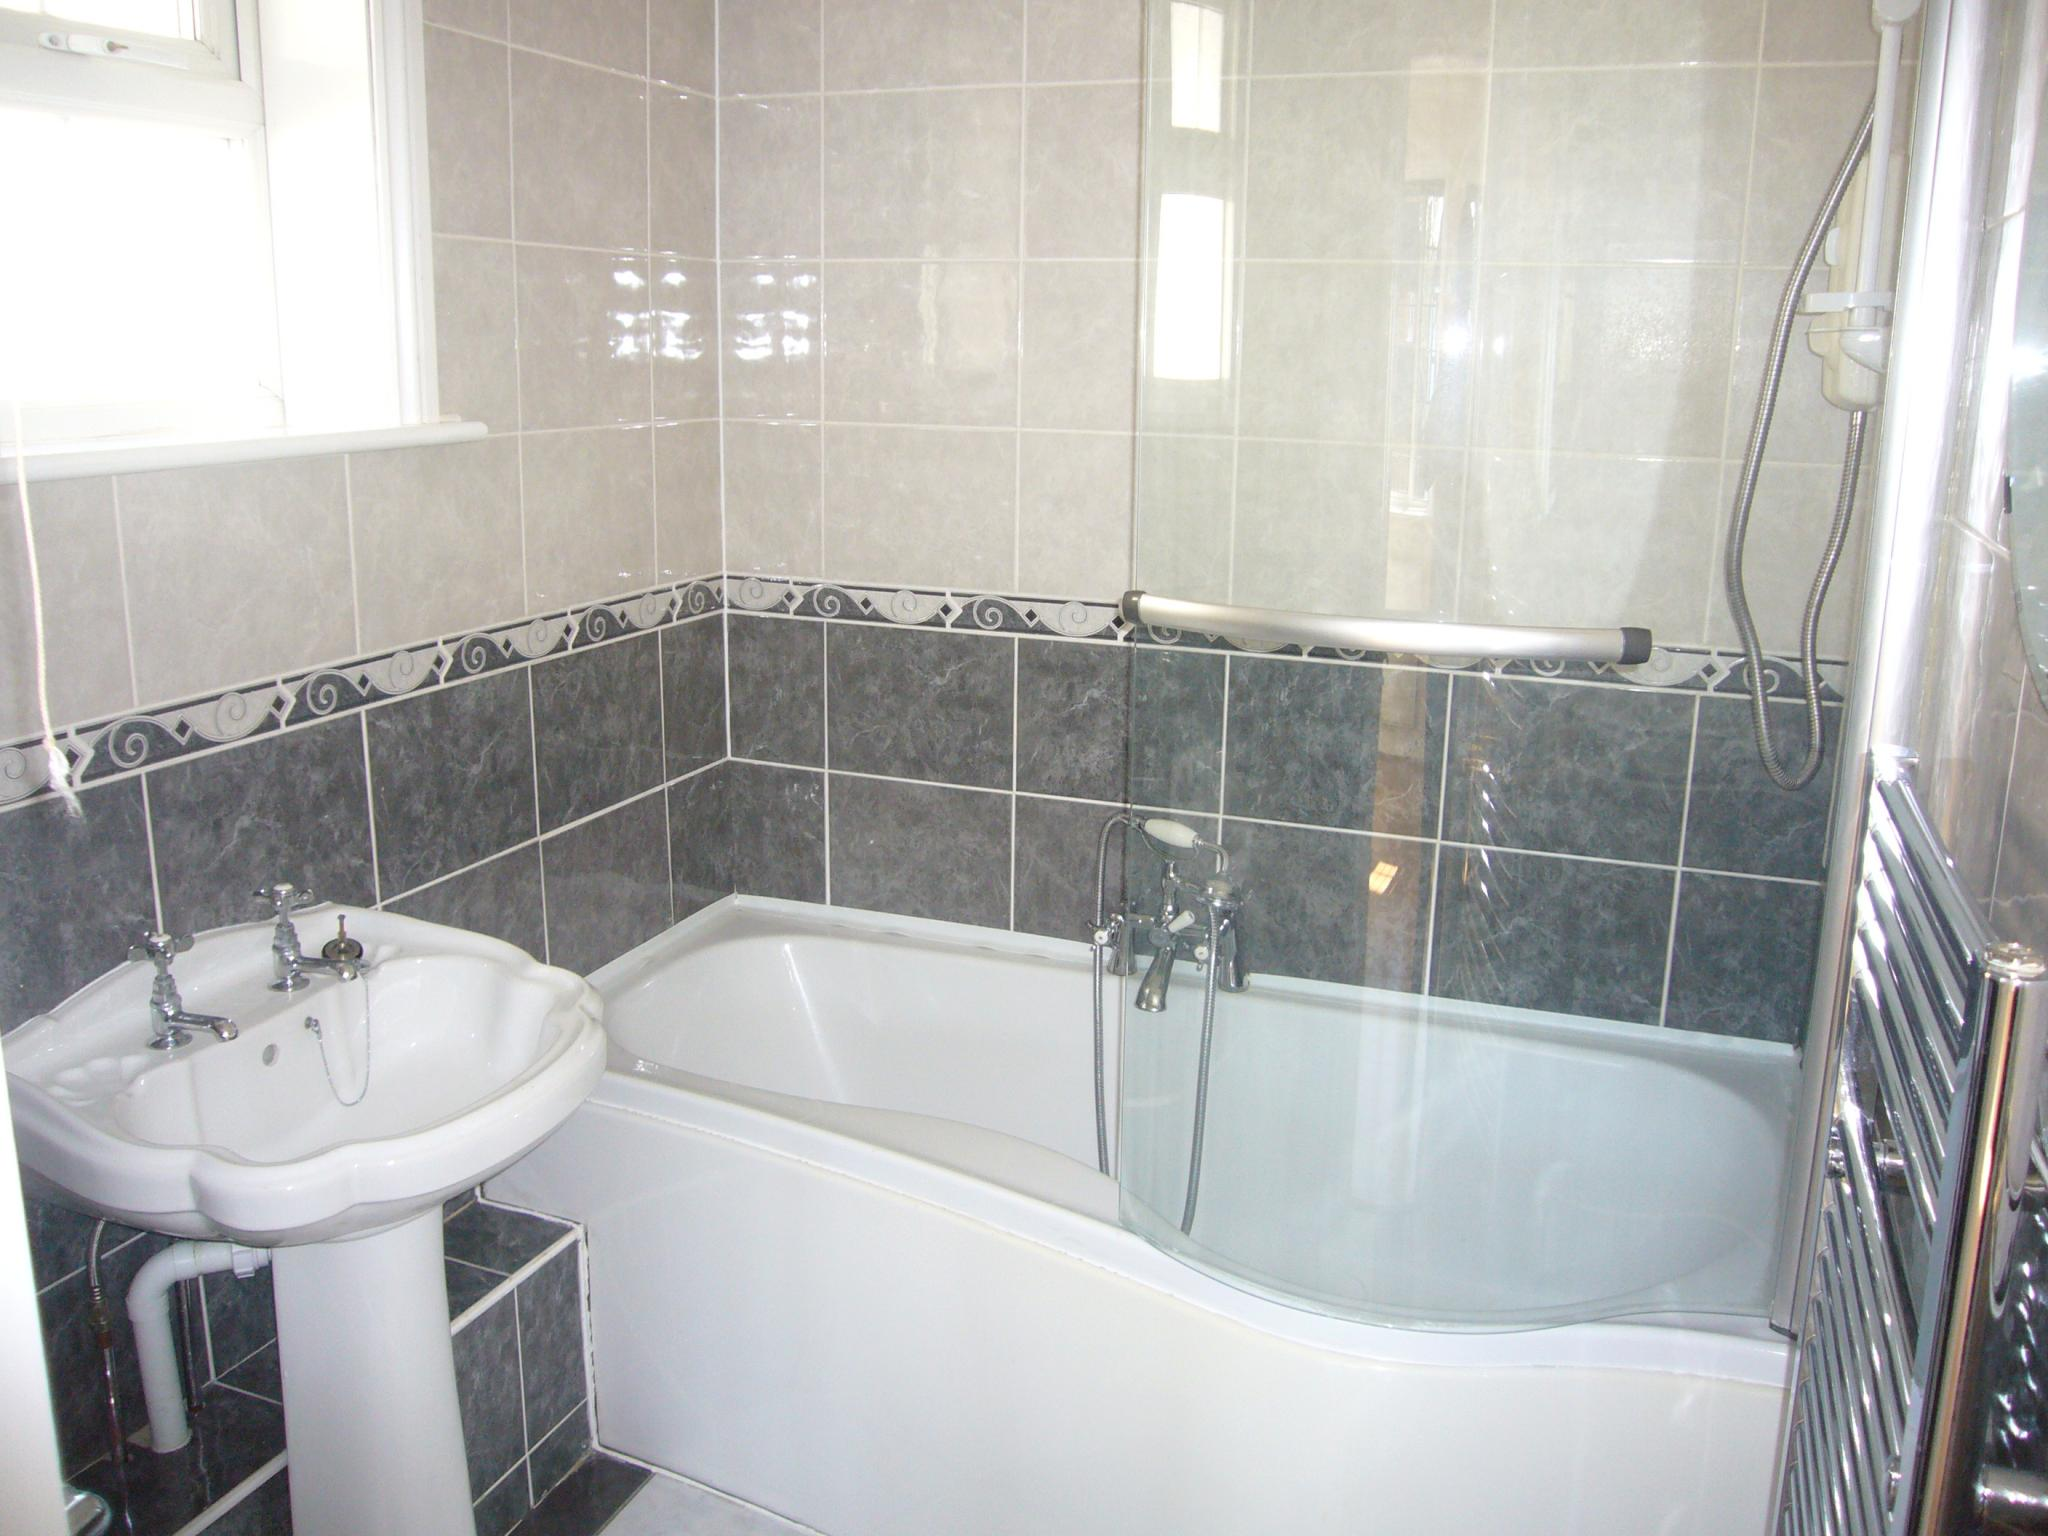 4 bedroom detached house Under Offer in Cheam - Photograph 9.